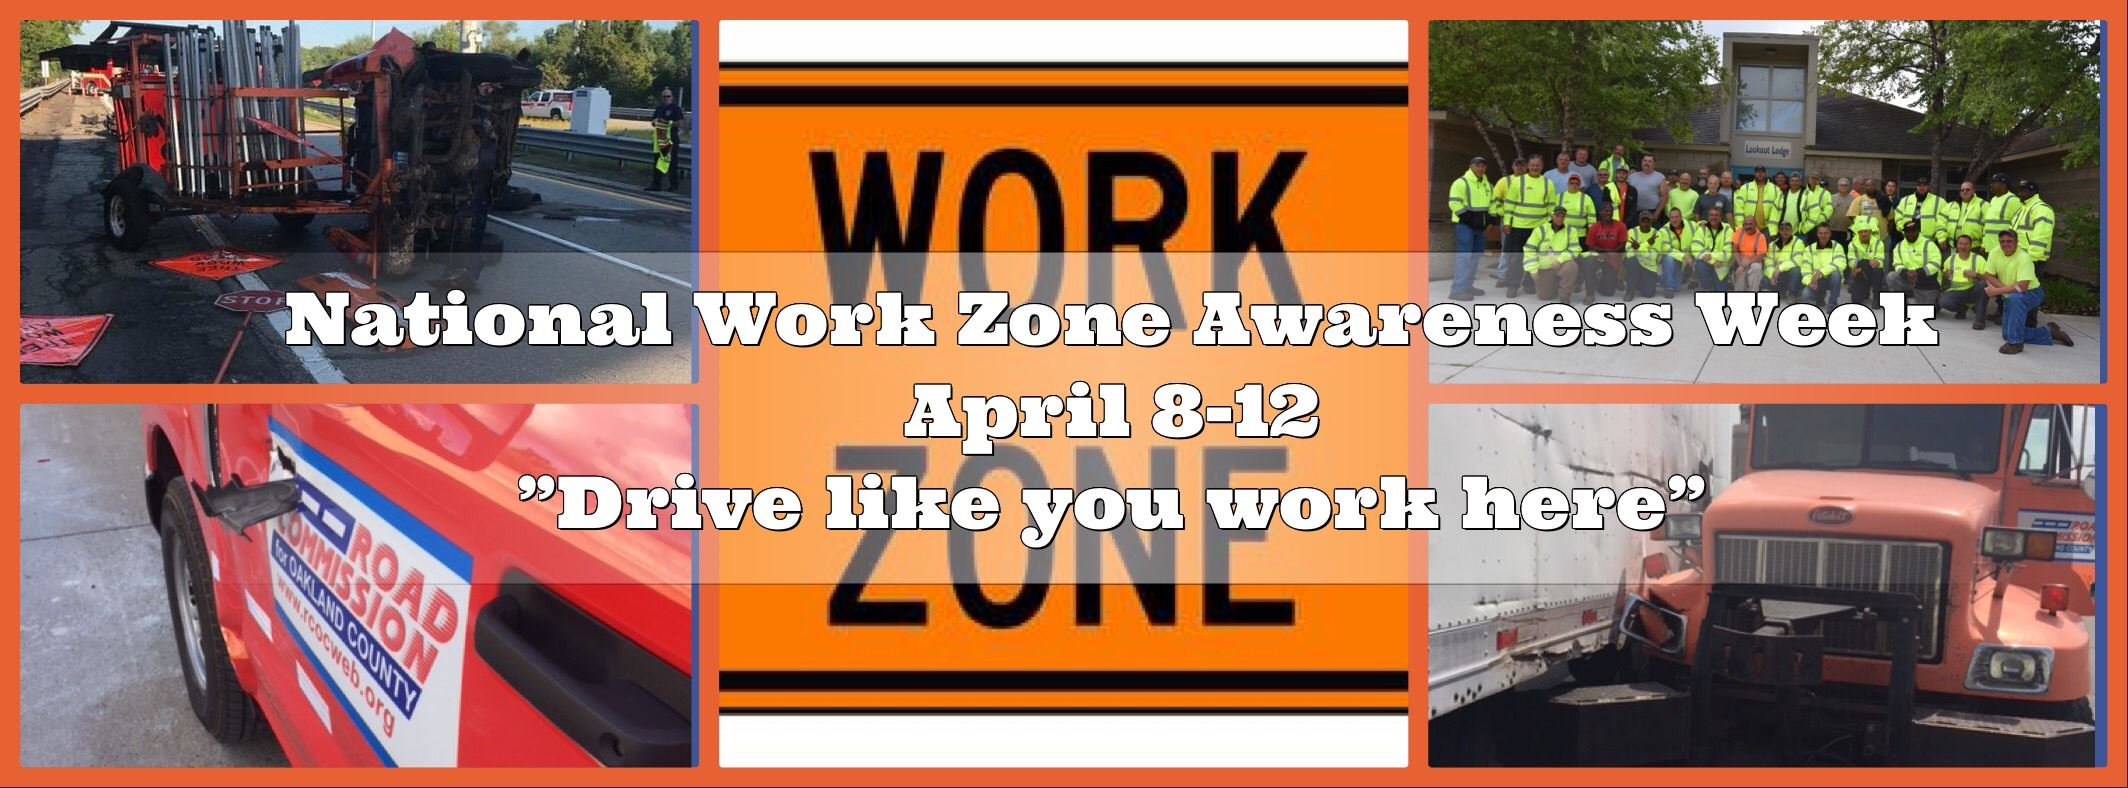 National Work Zone Awareness Week photos of employees and accidents